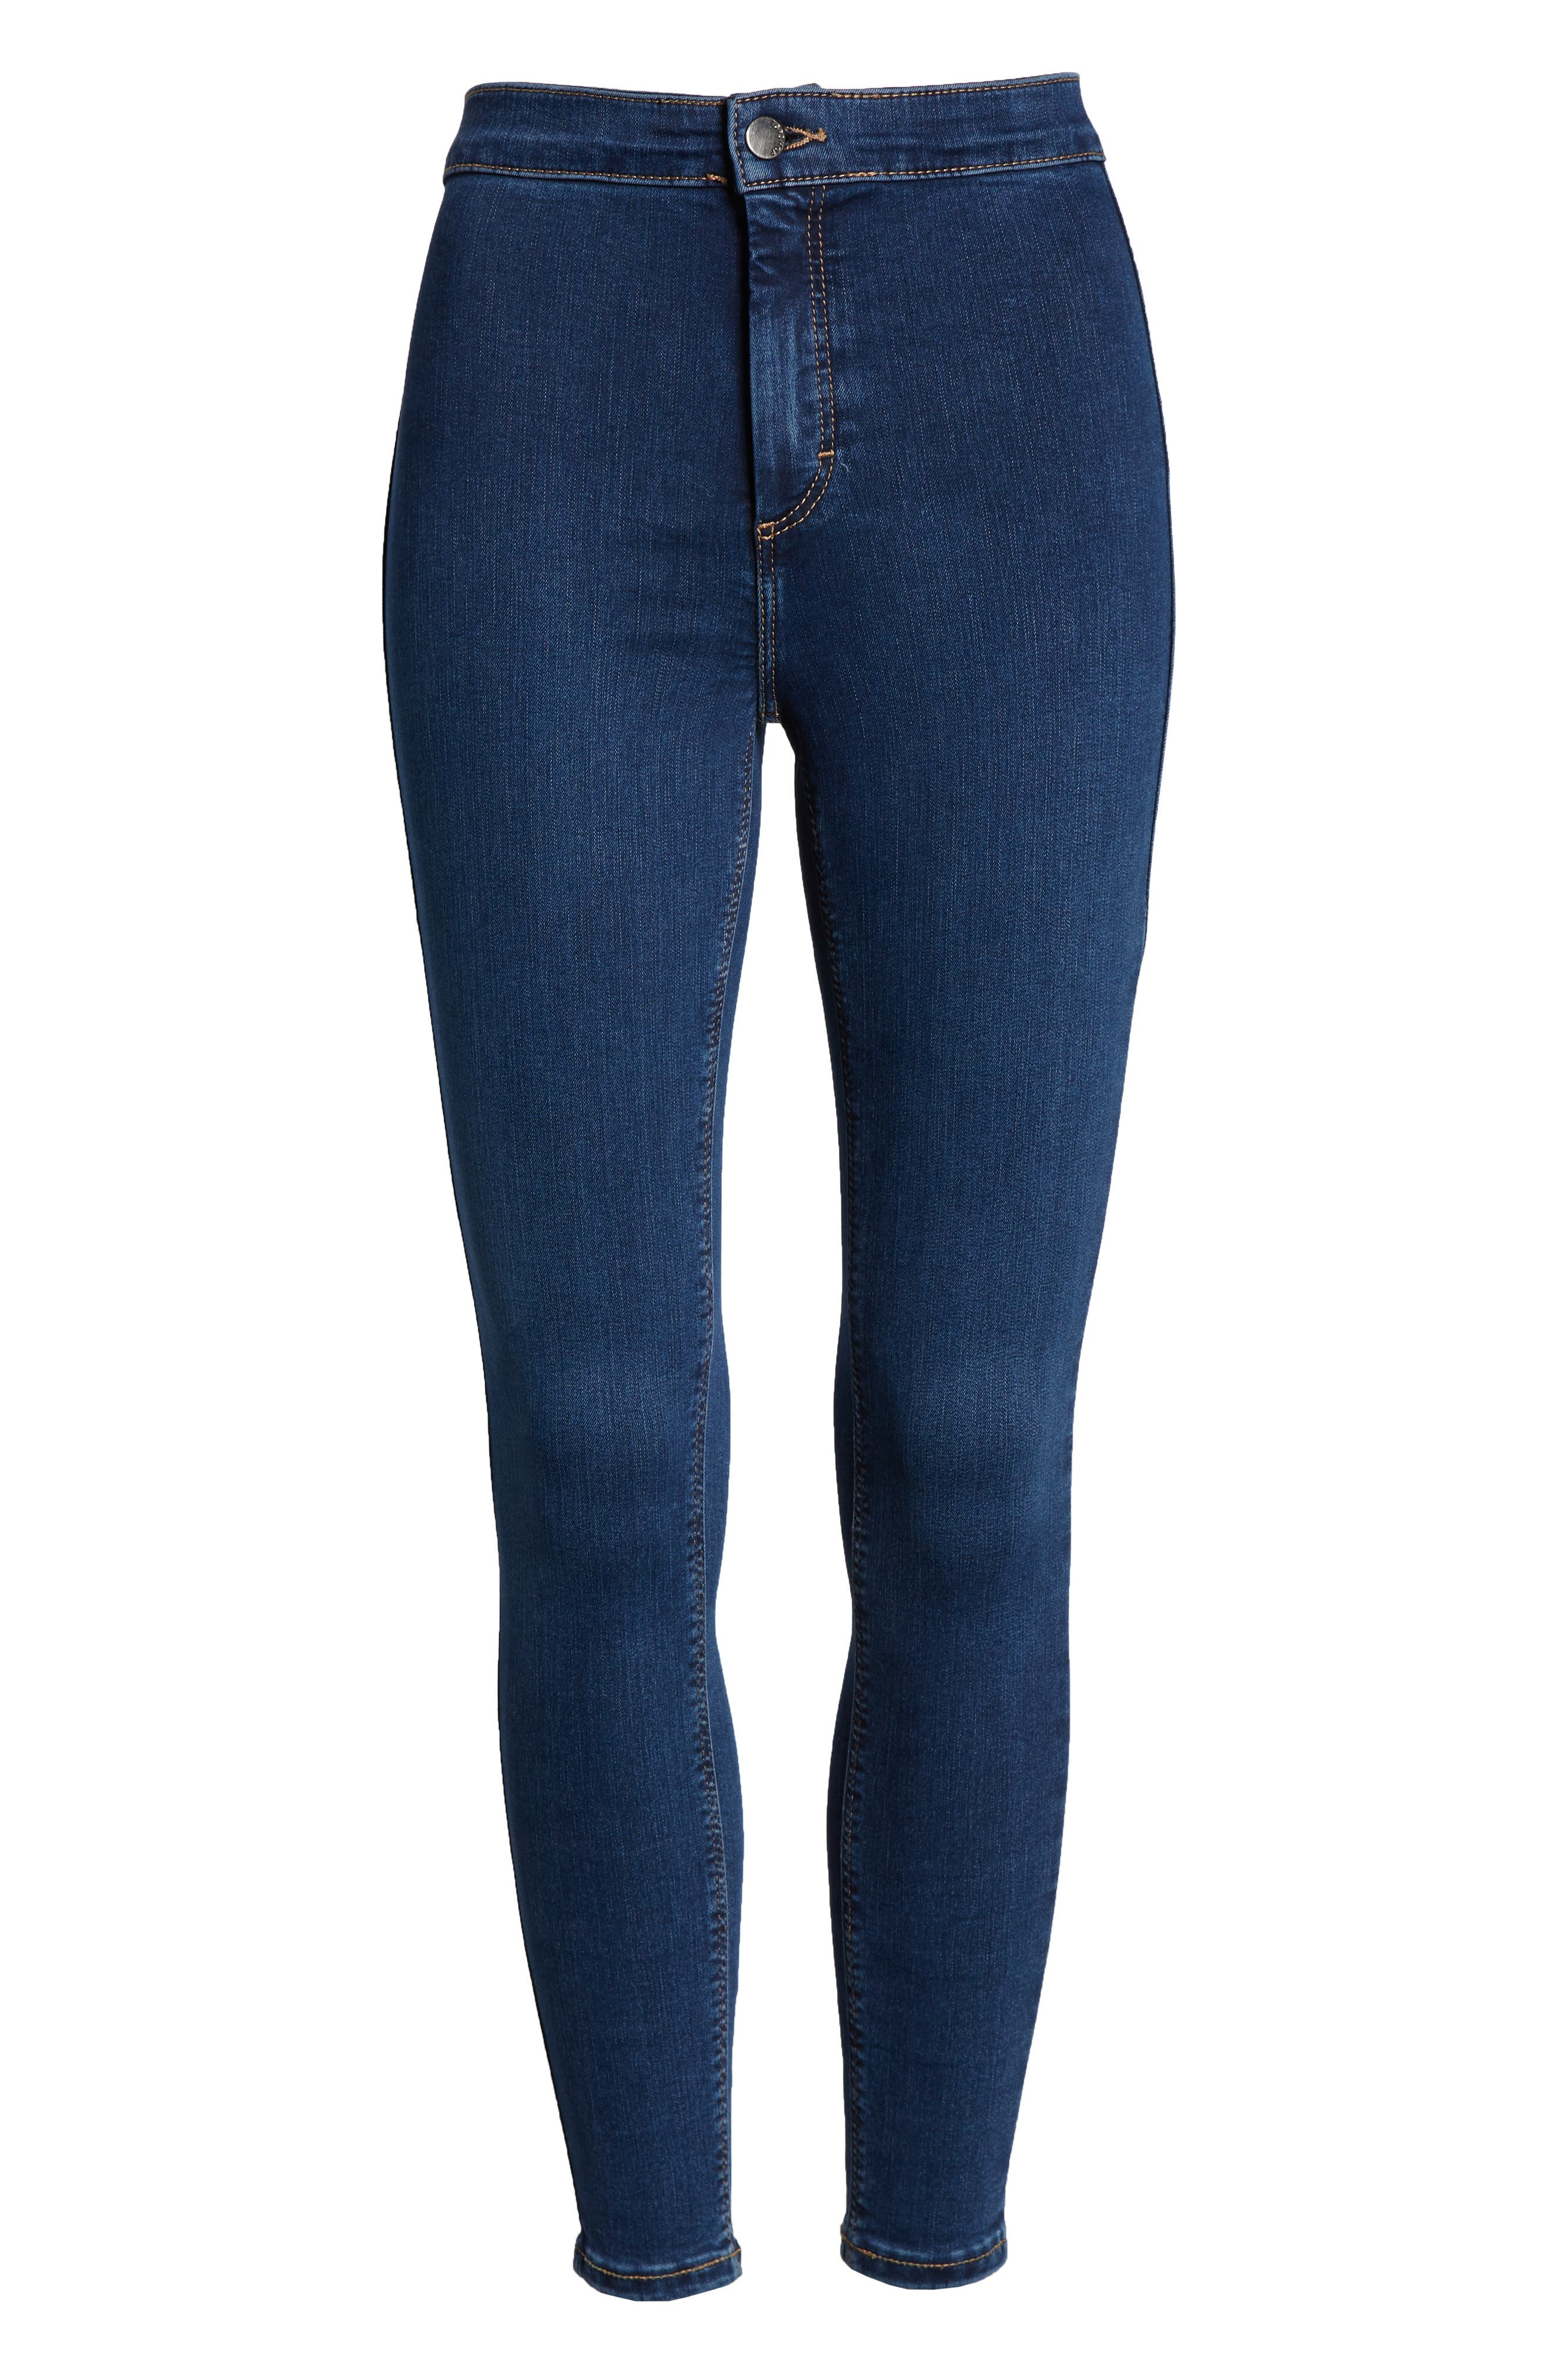 TOPSHOP, Joni High Waist Crop Skinny Jeans, Alternate thumbnail 2, color, 400